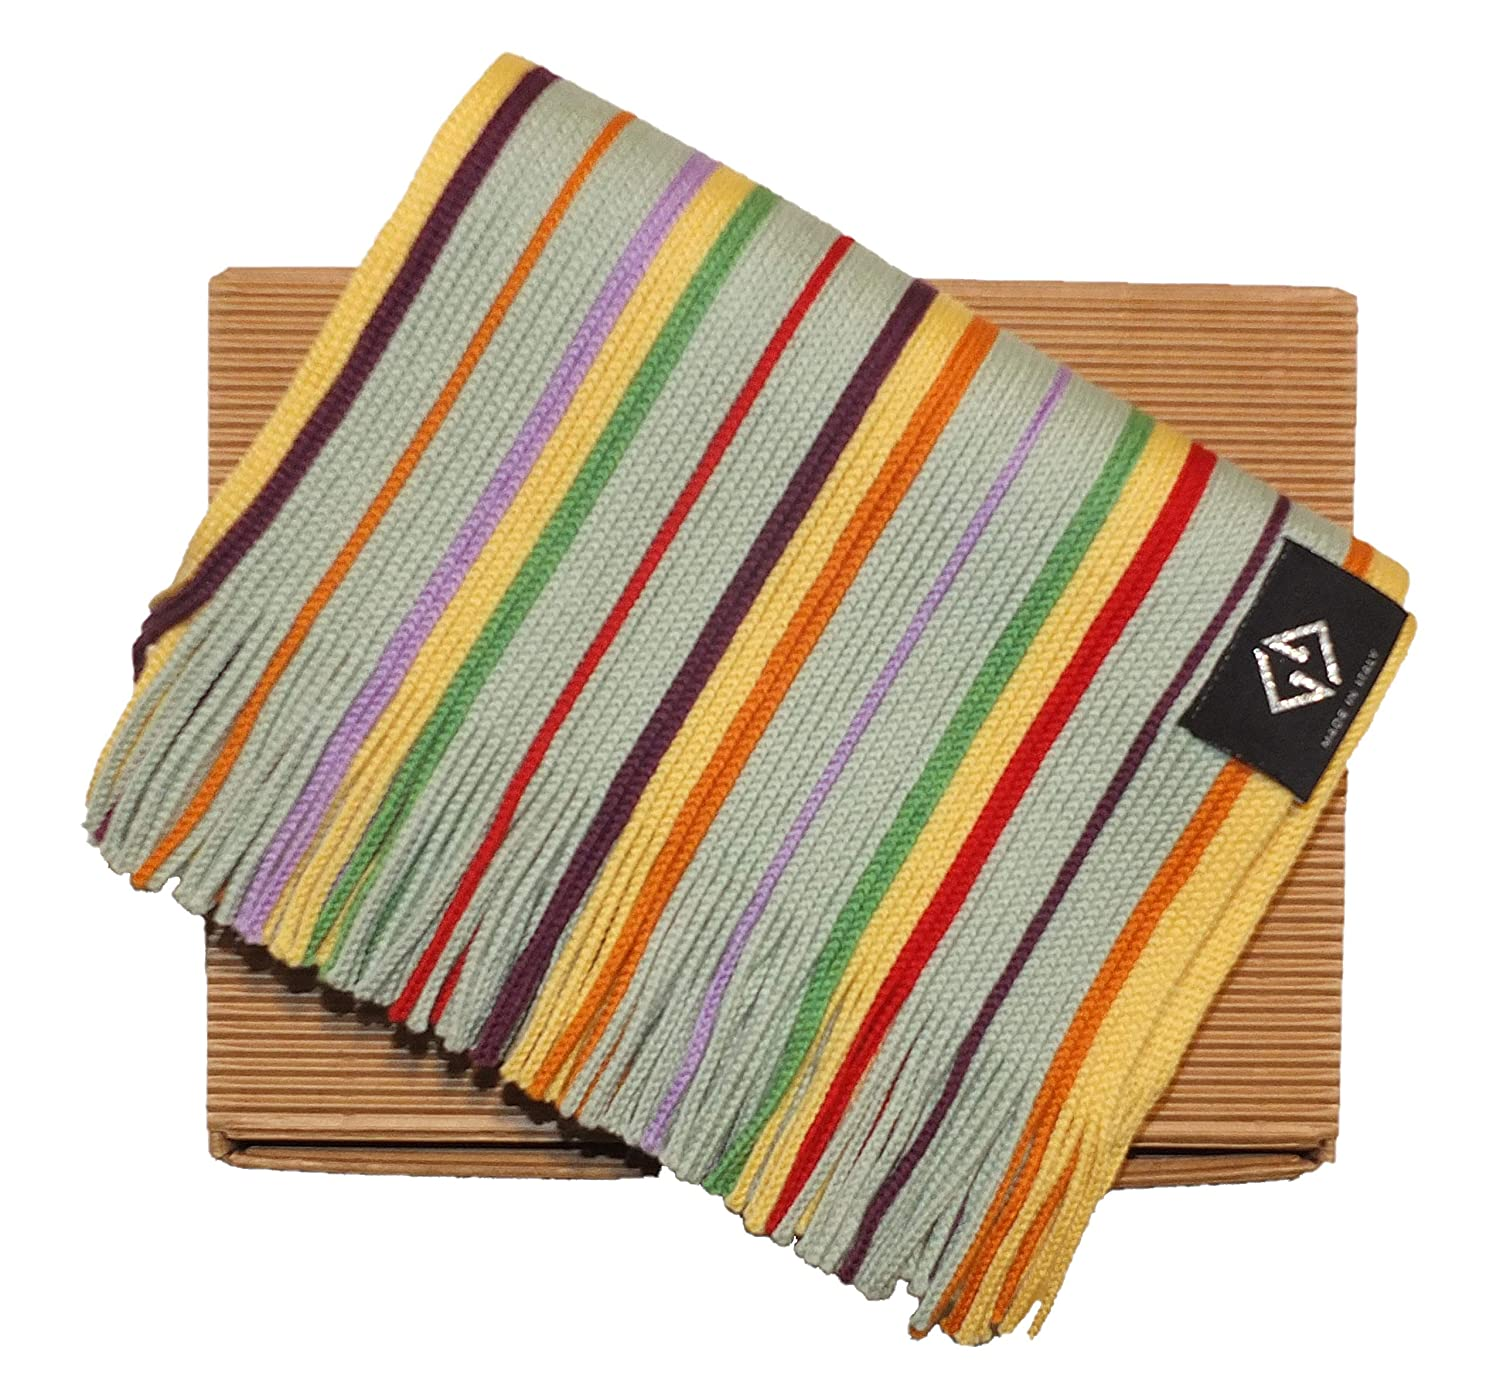 140cm MADE IN ITALY 100/% MERINOS WOOL 20cm Scarf child vertical striped article with fringe